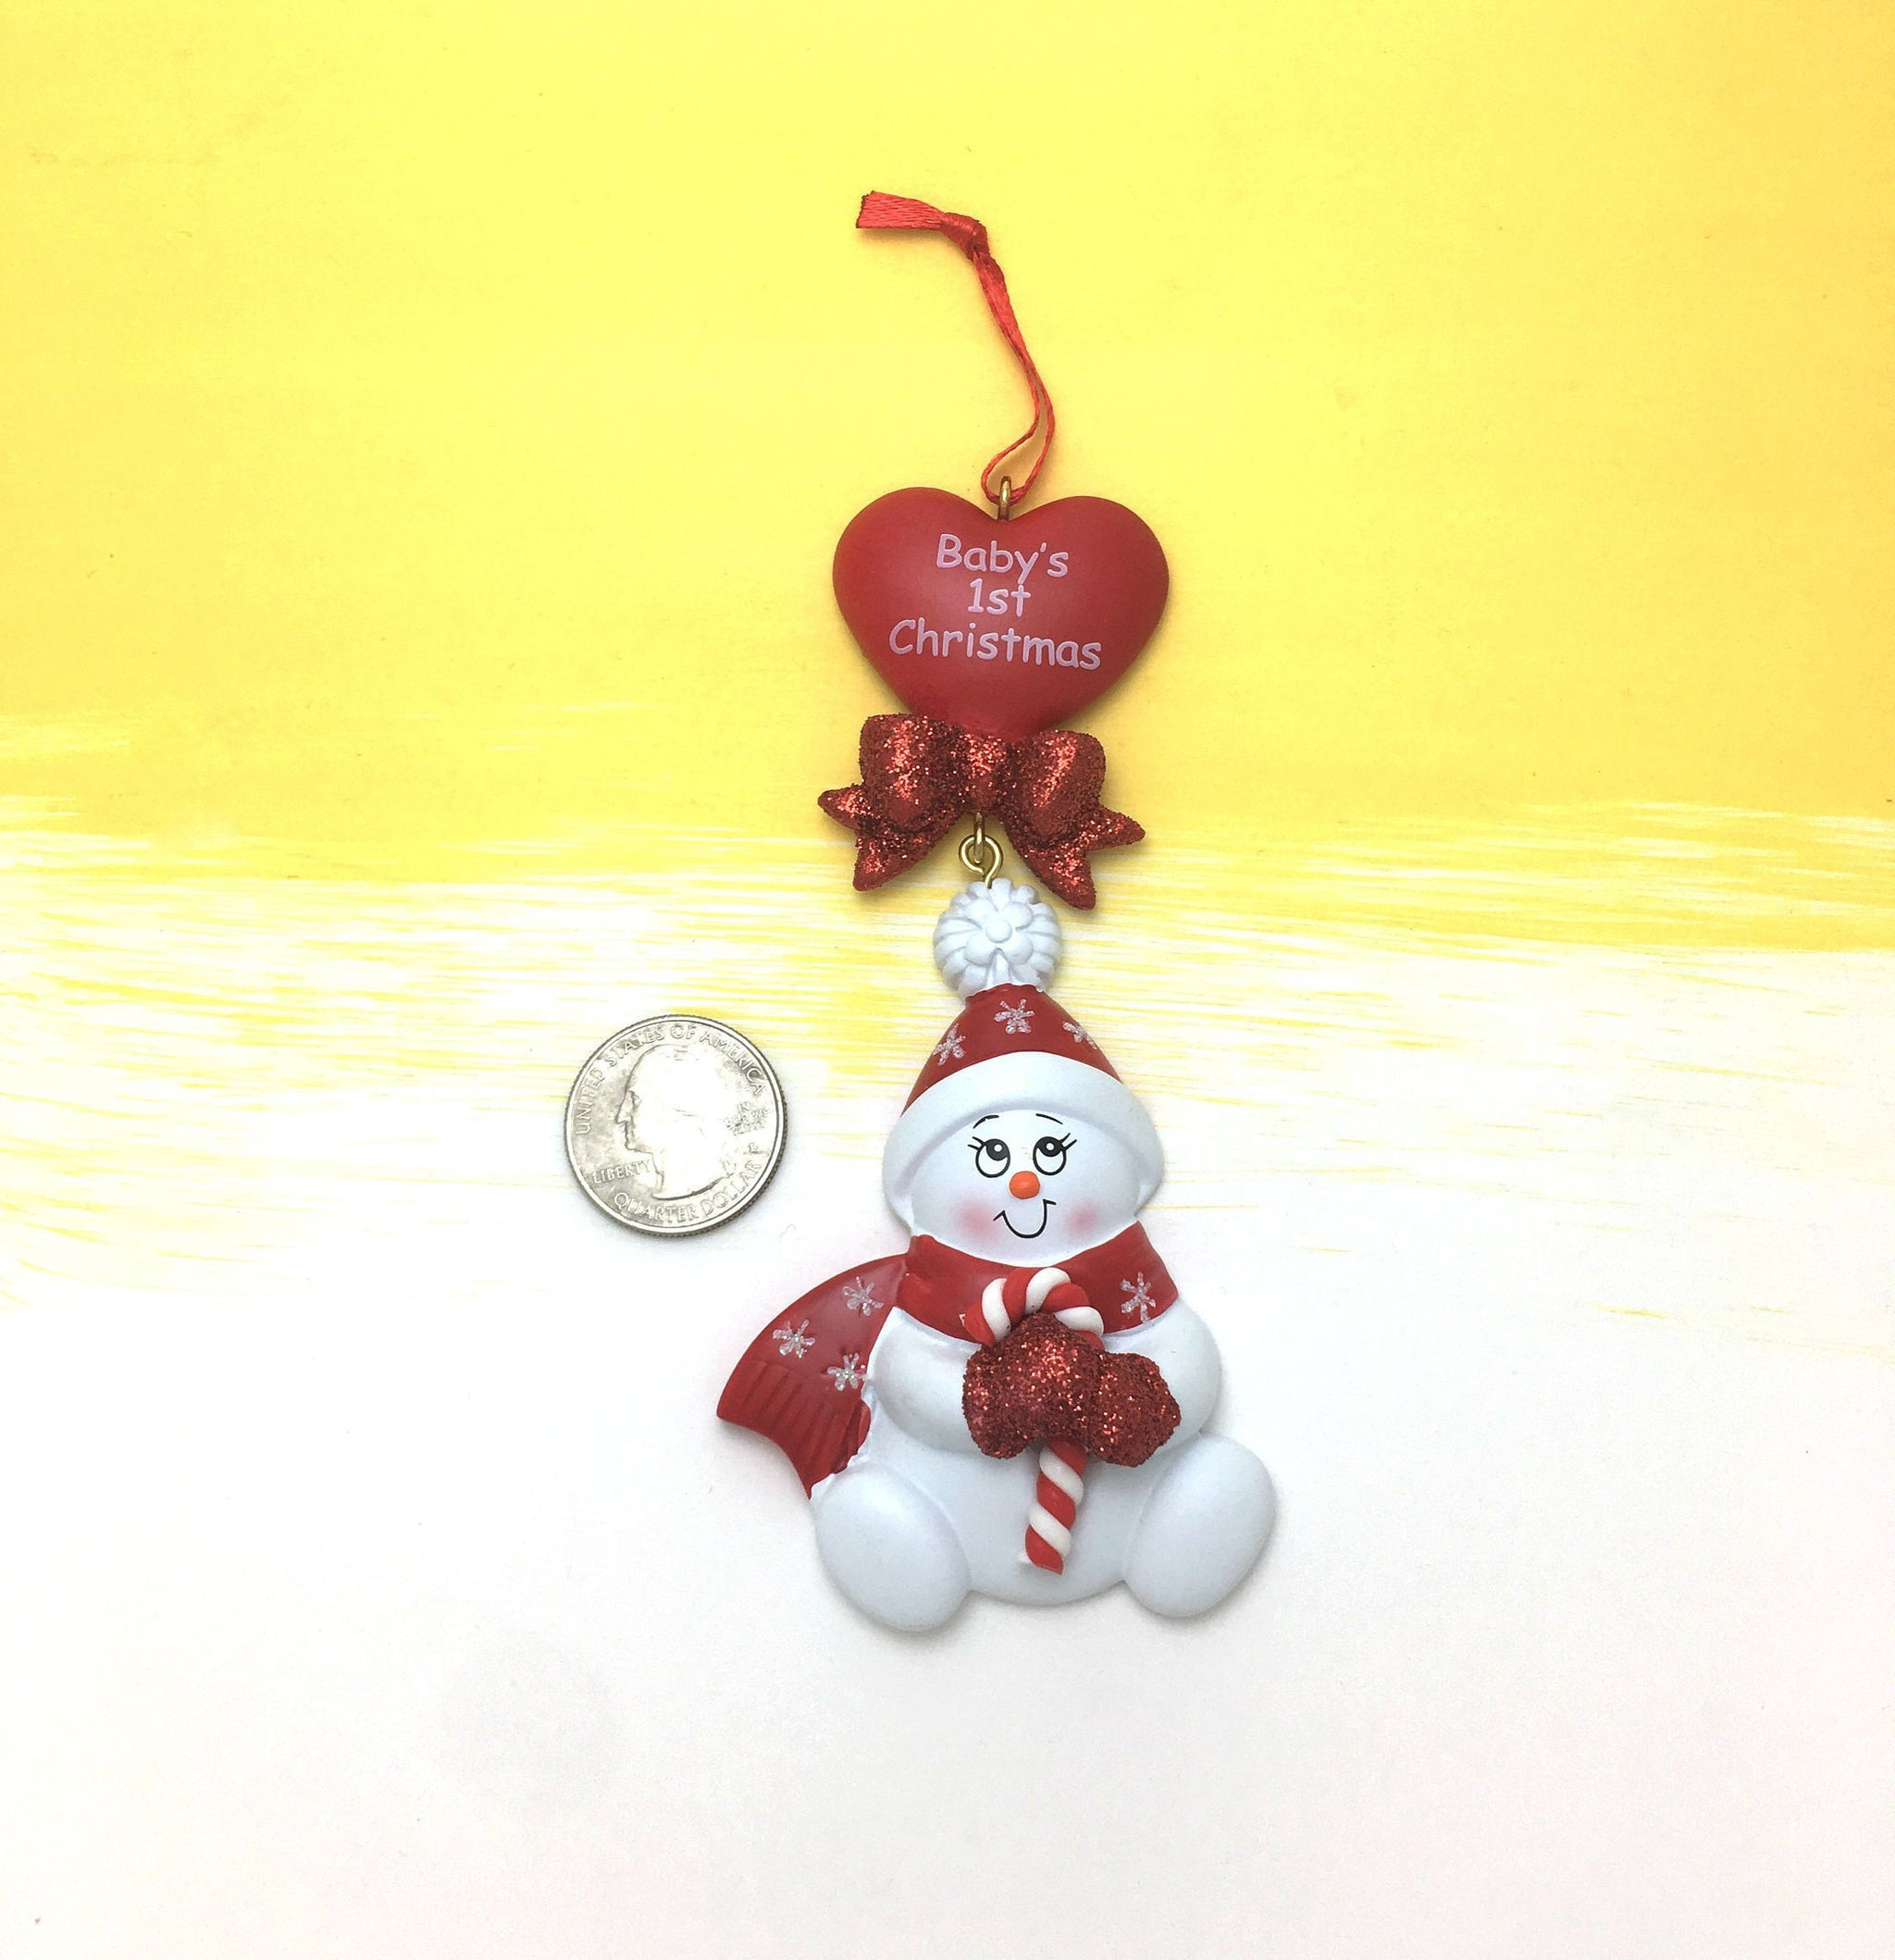 Personalised Christmas Bauble bays 1st Christmas foot shape 2018 any message